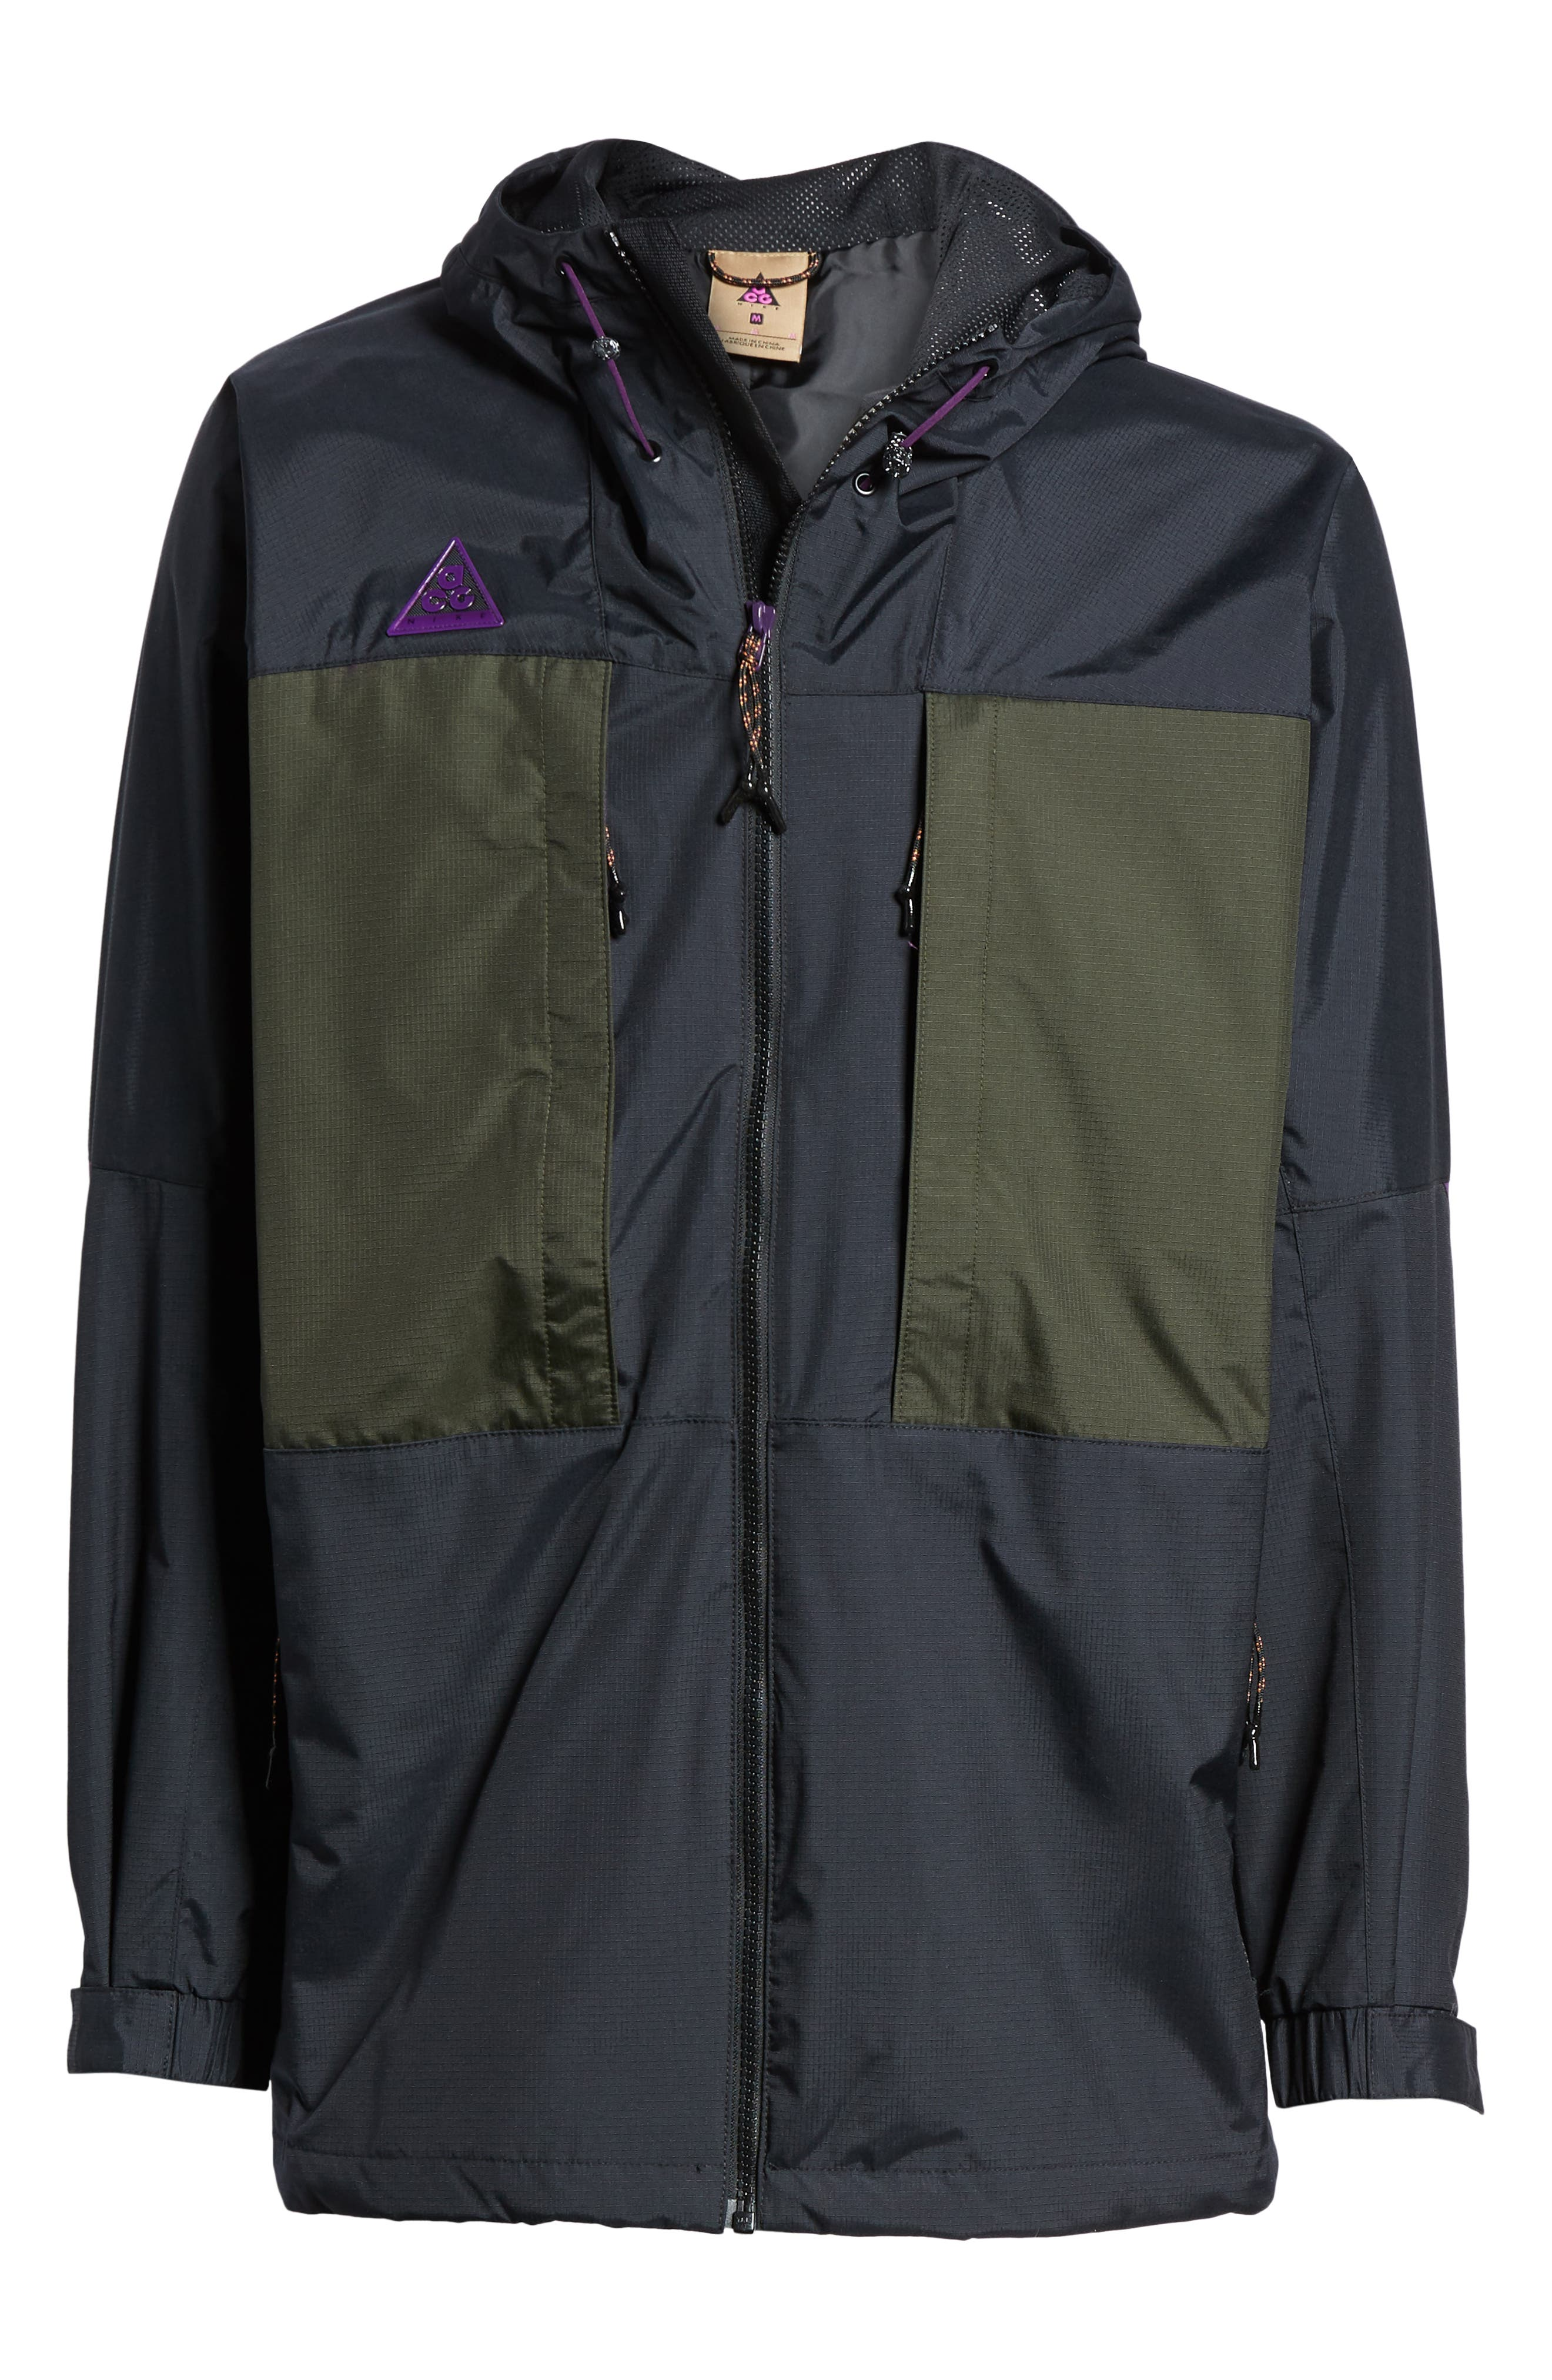 ACG Men's Anorak Jacket,                             Alternate thumbnail 6, color,                             BLACK/ SEQUOIA/ BLACK